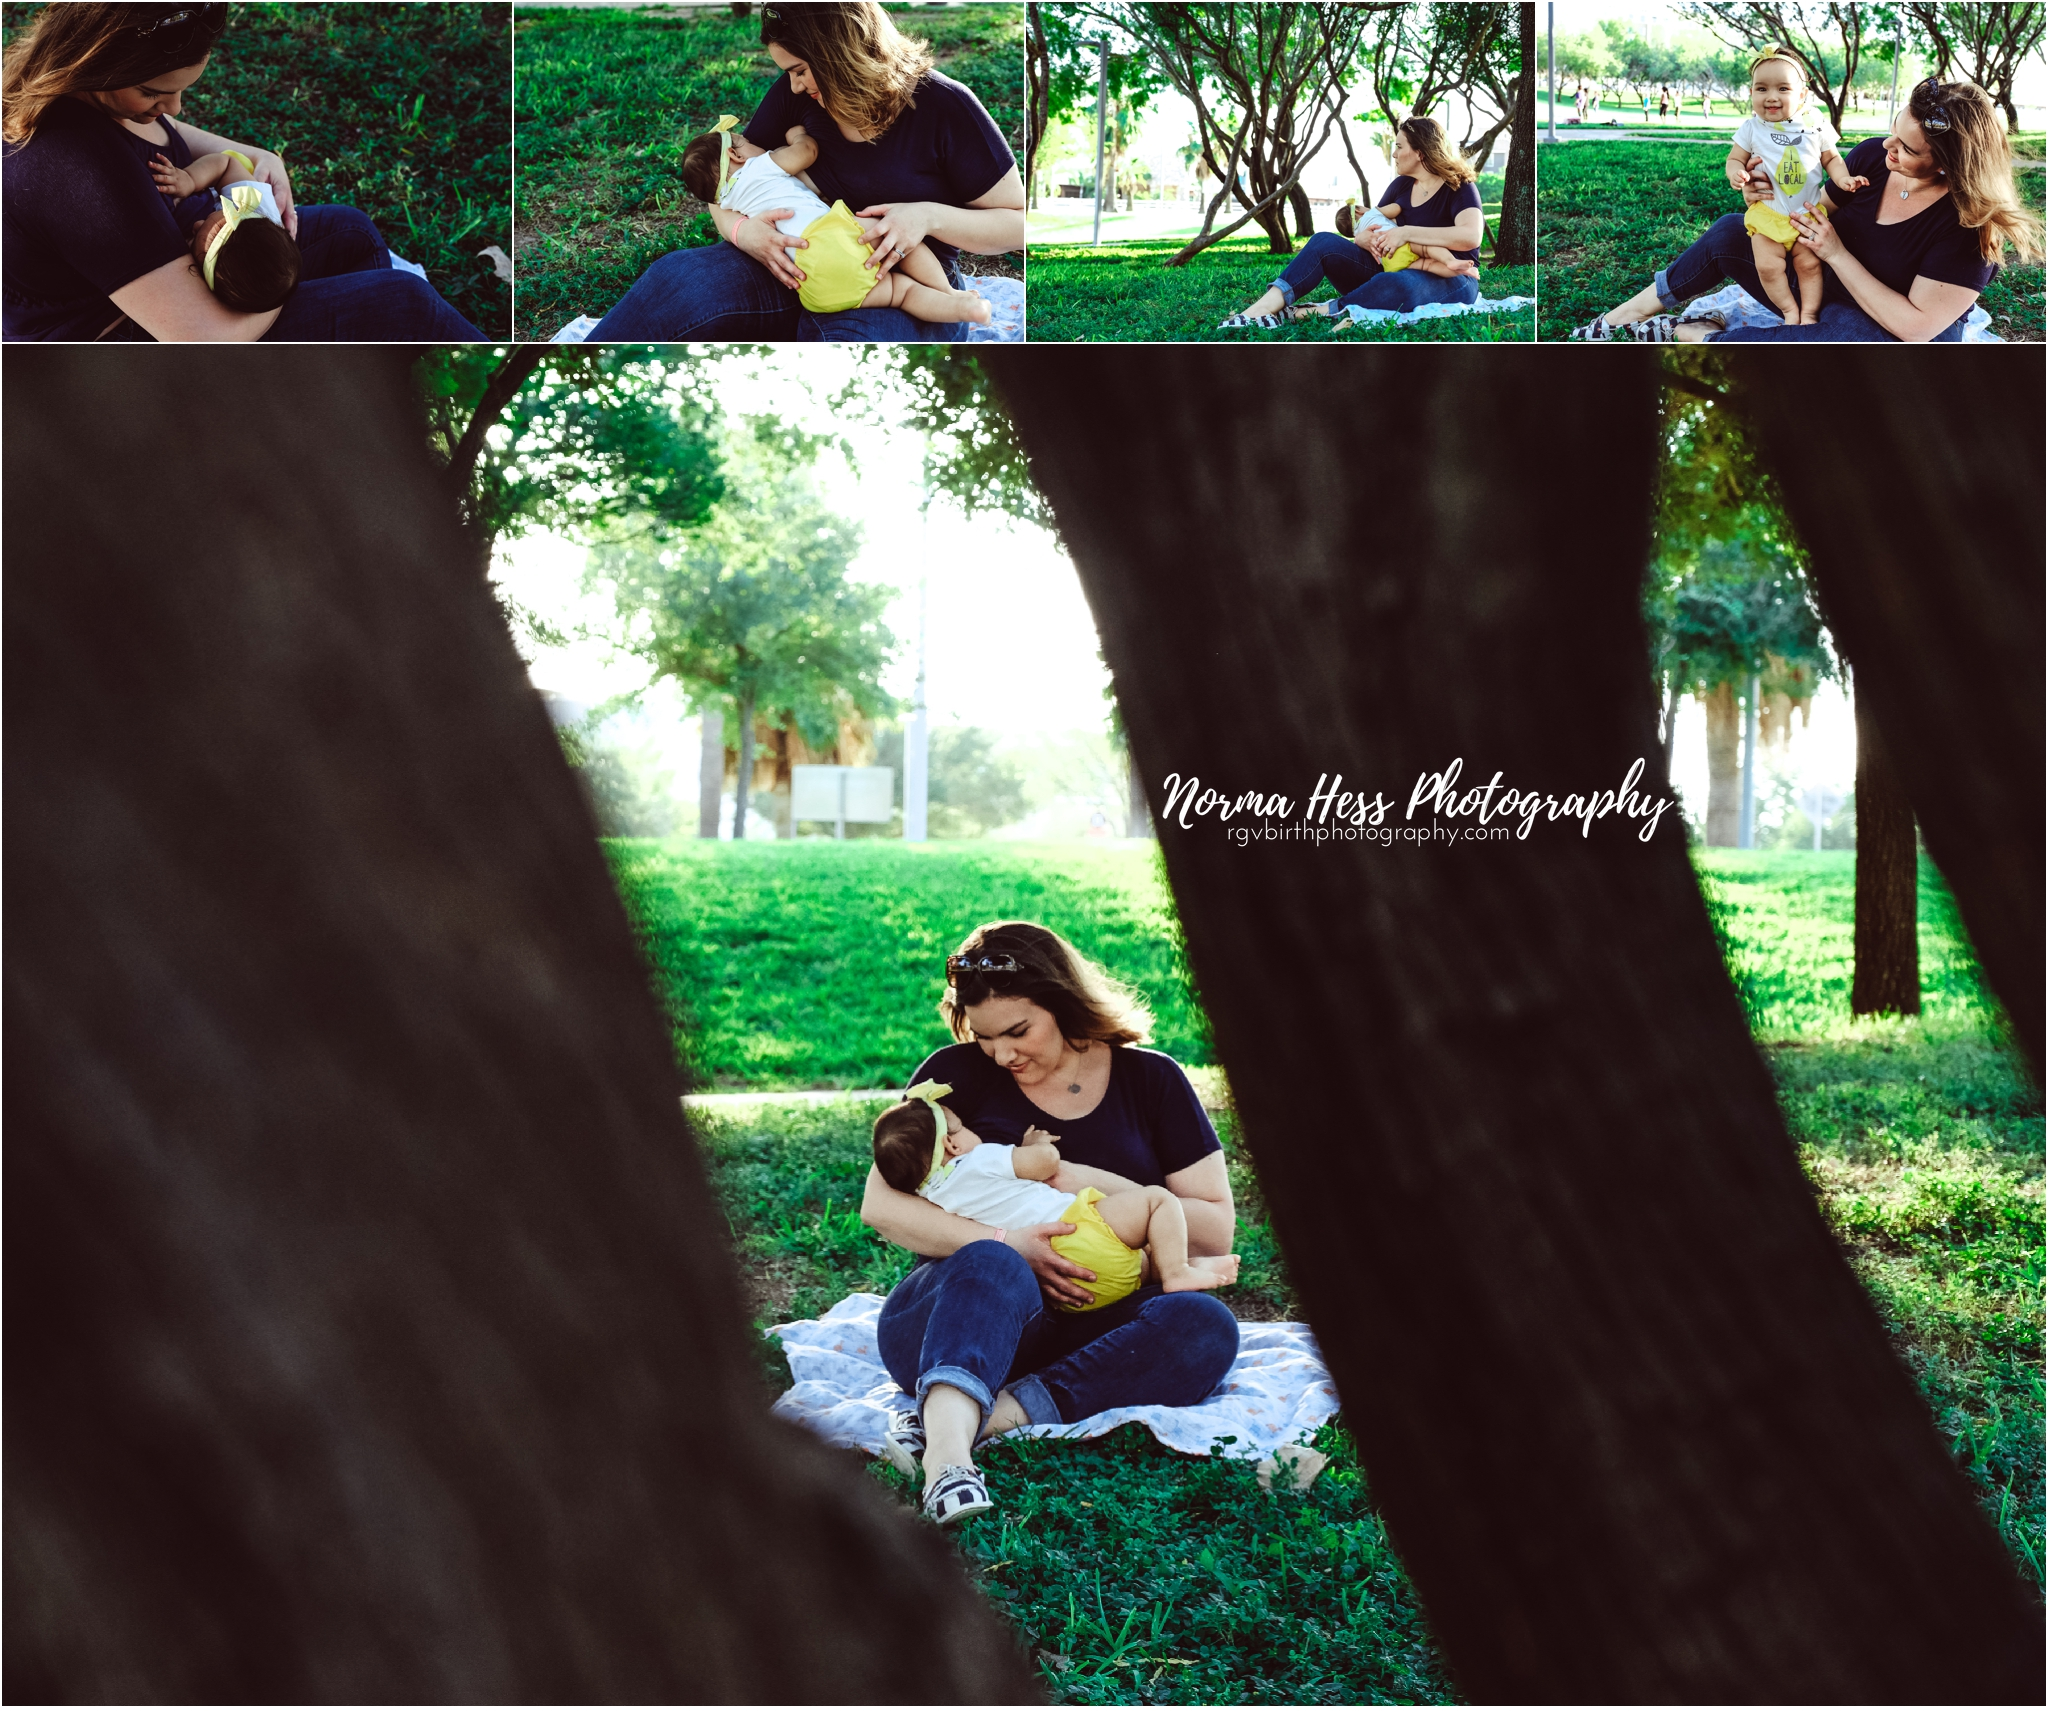 Breastfeeding Photos by Norma Hess Photography in McAllen, TX